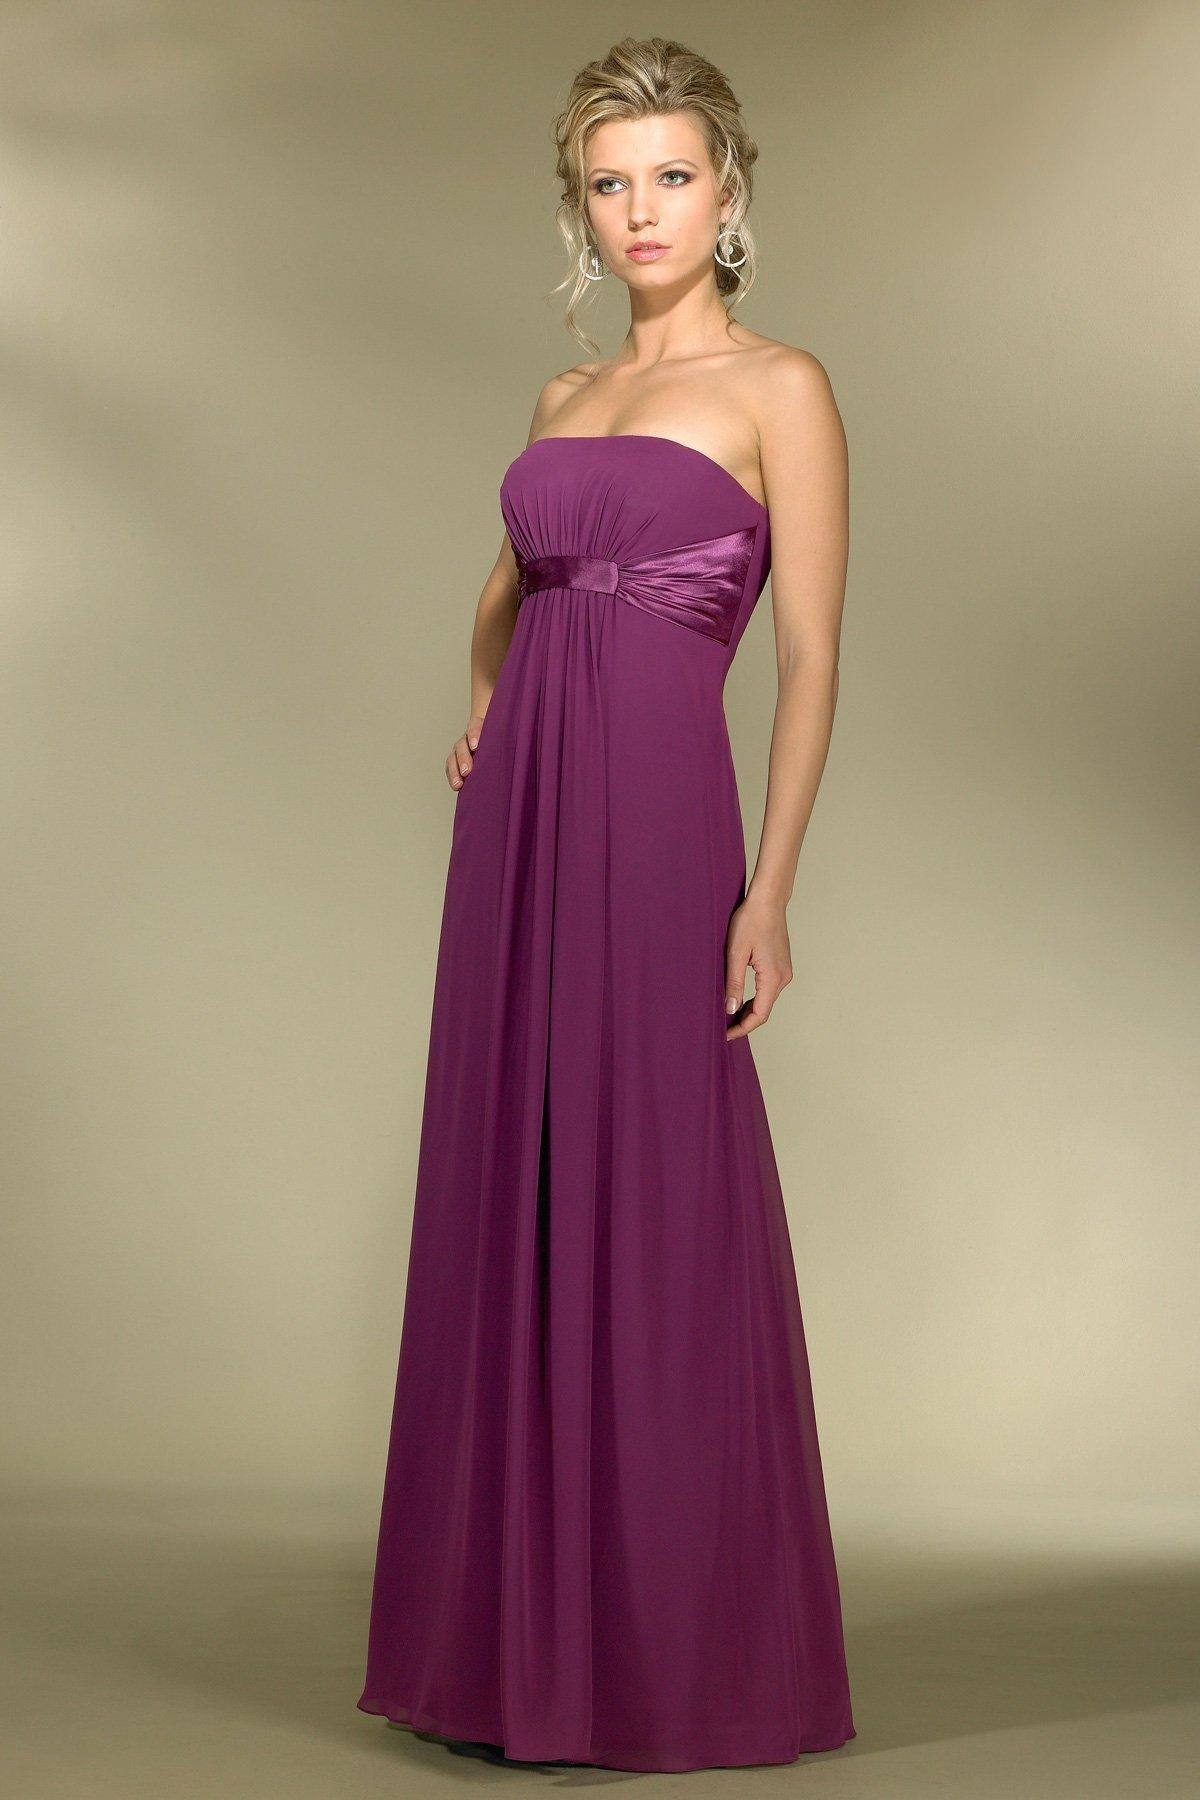 Designer Formal Evening Dresses and Gowns in Gold Coast - The Bridal ...